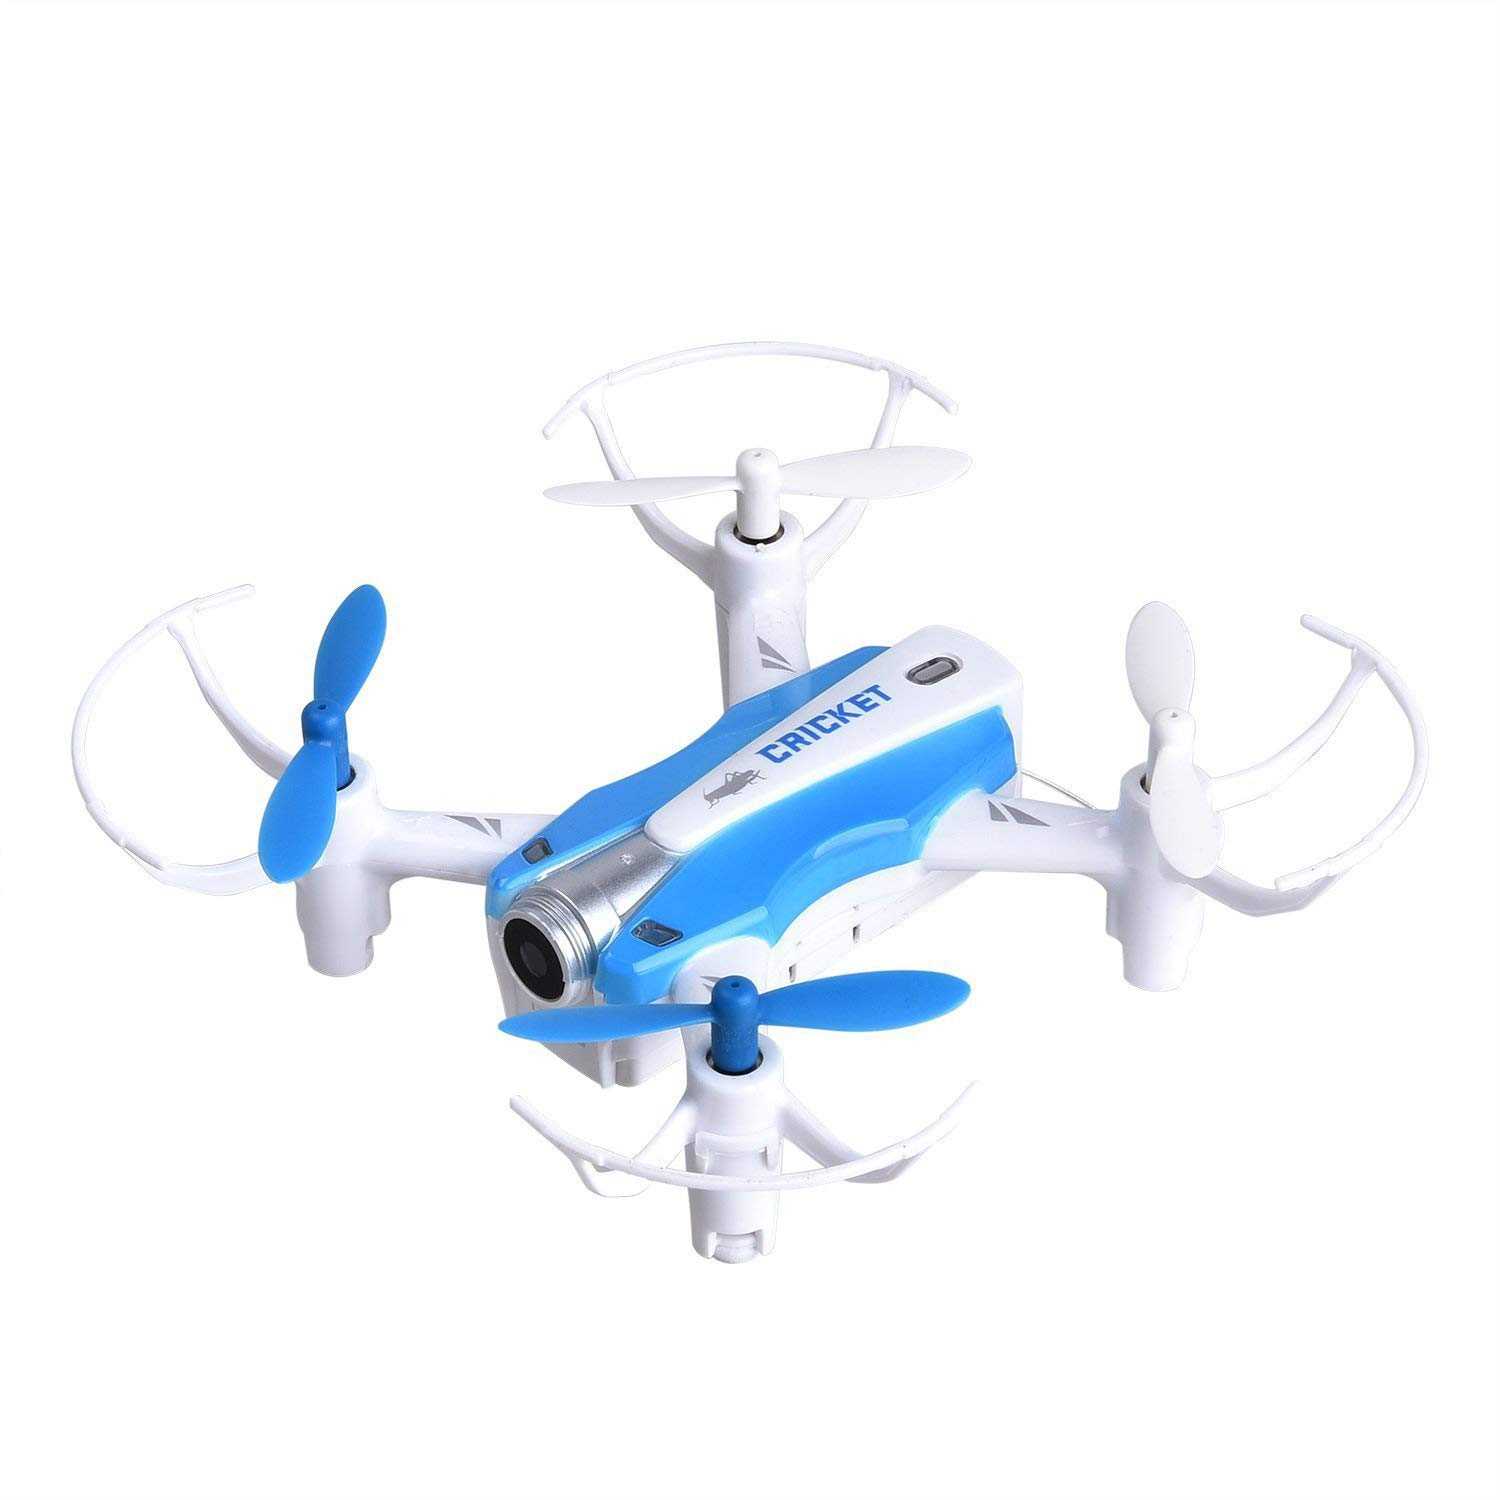 WANG XIN Christmas Air Pressure Fixed high Mini Four-axis Self-Timer Mobile Phone Remote Control Aircraft by WANG XIN (Image #1)